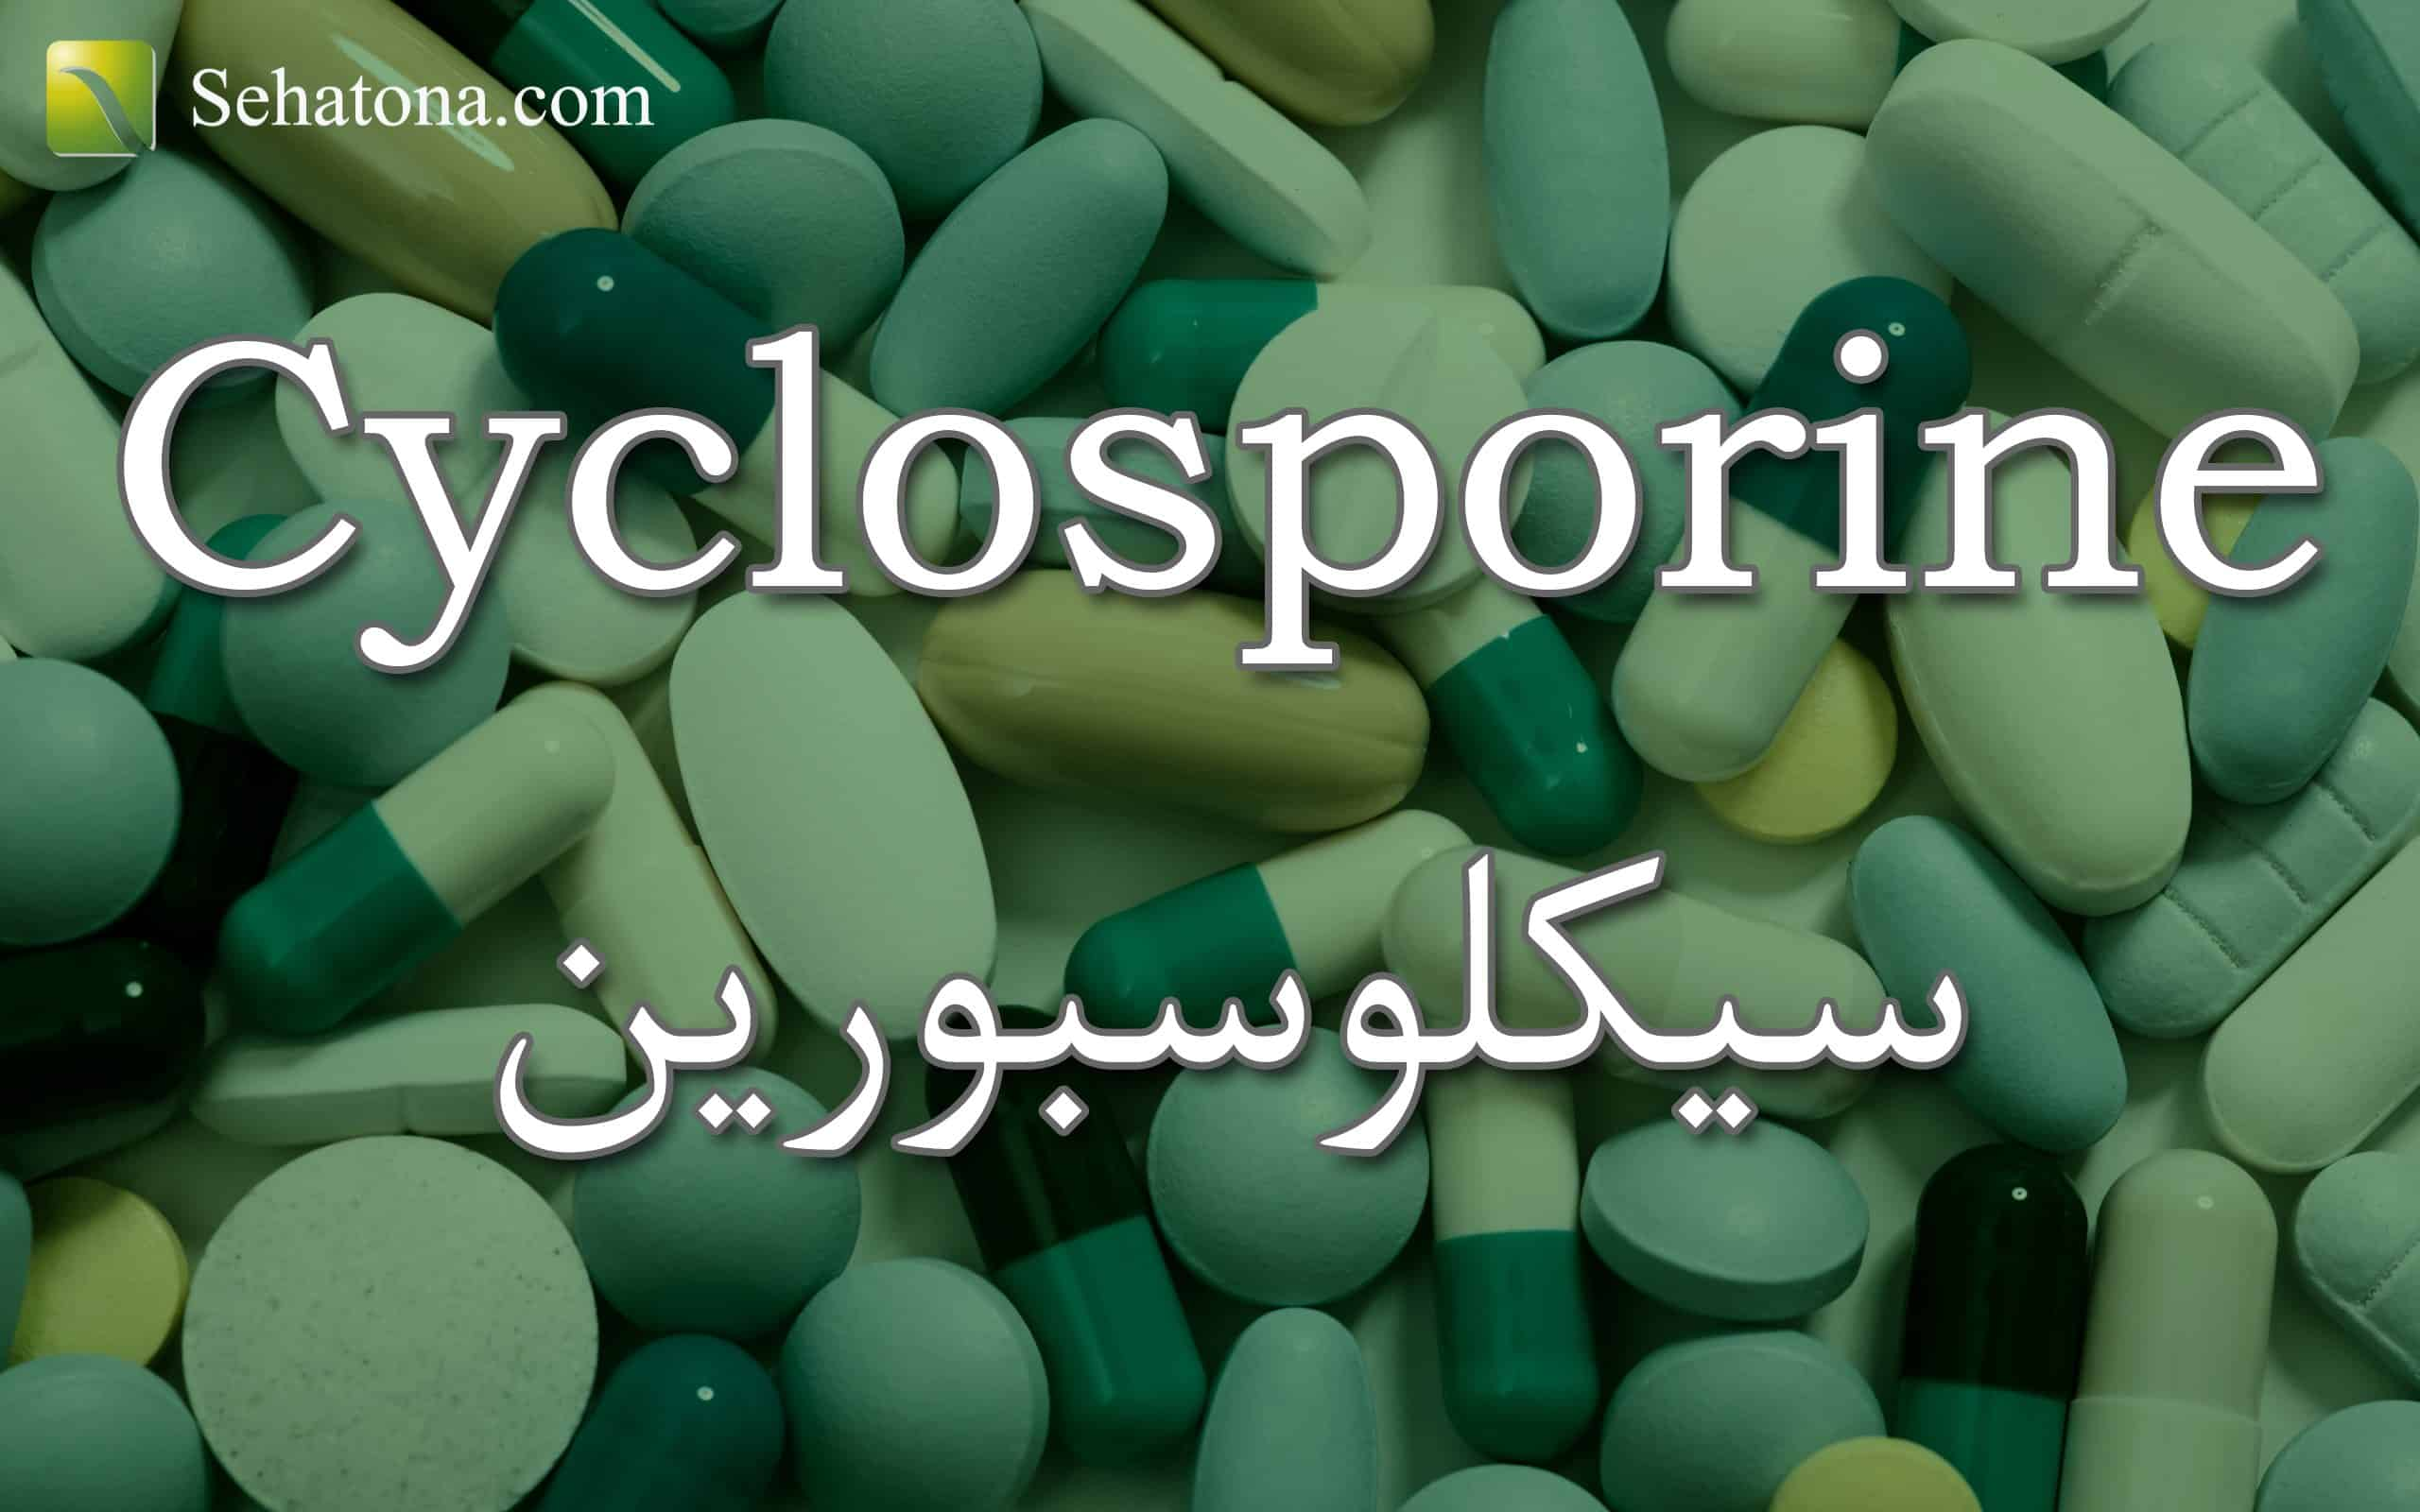 Cyclosporine